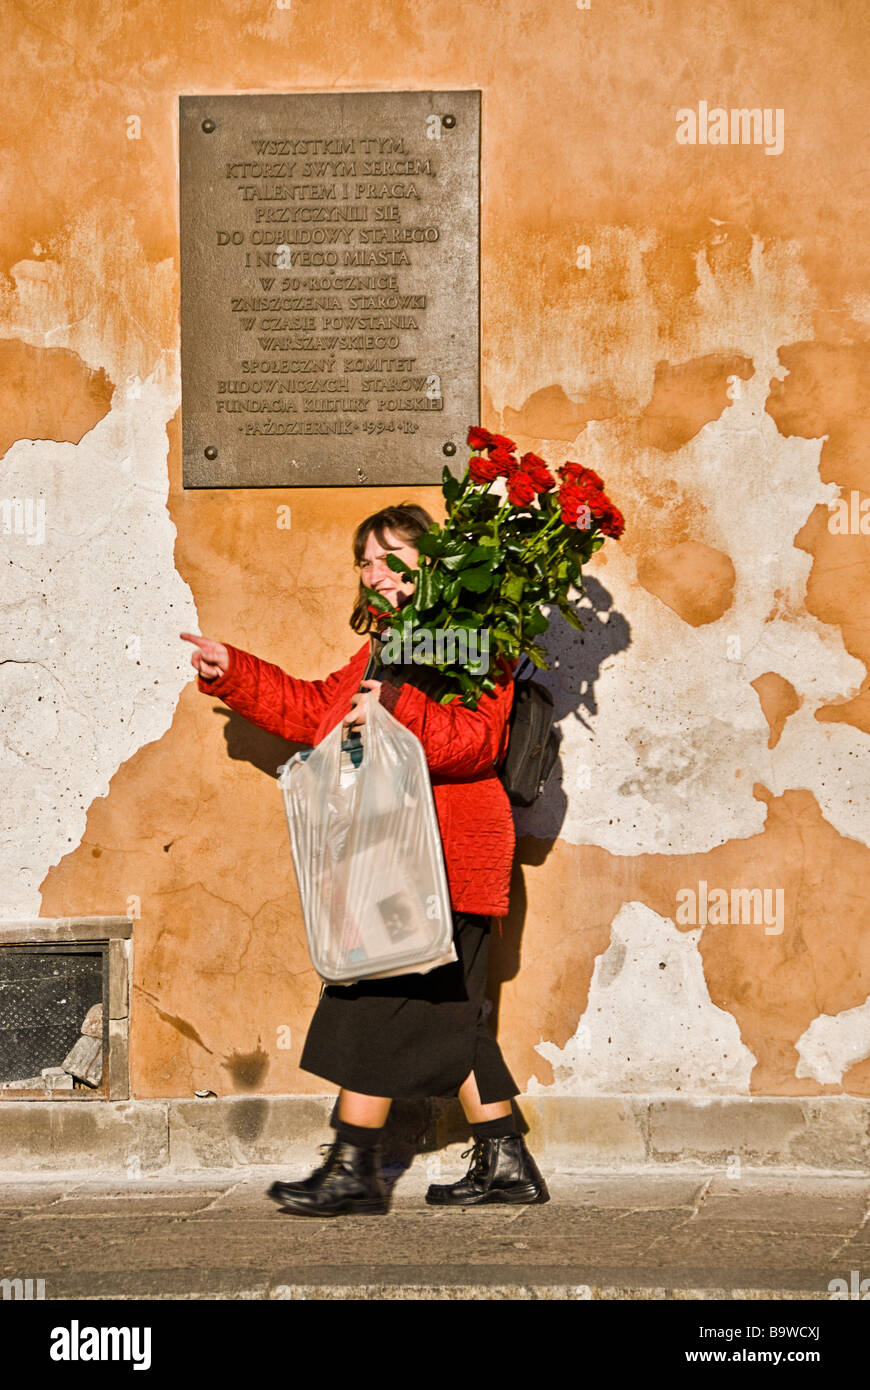 Woman with a flower bouquet walking in the streets of the old city of Warsaw, Poland, Europe. - Stock Image